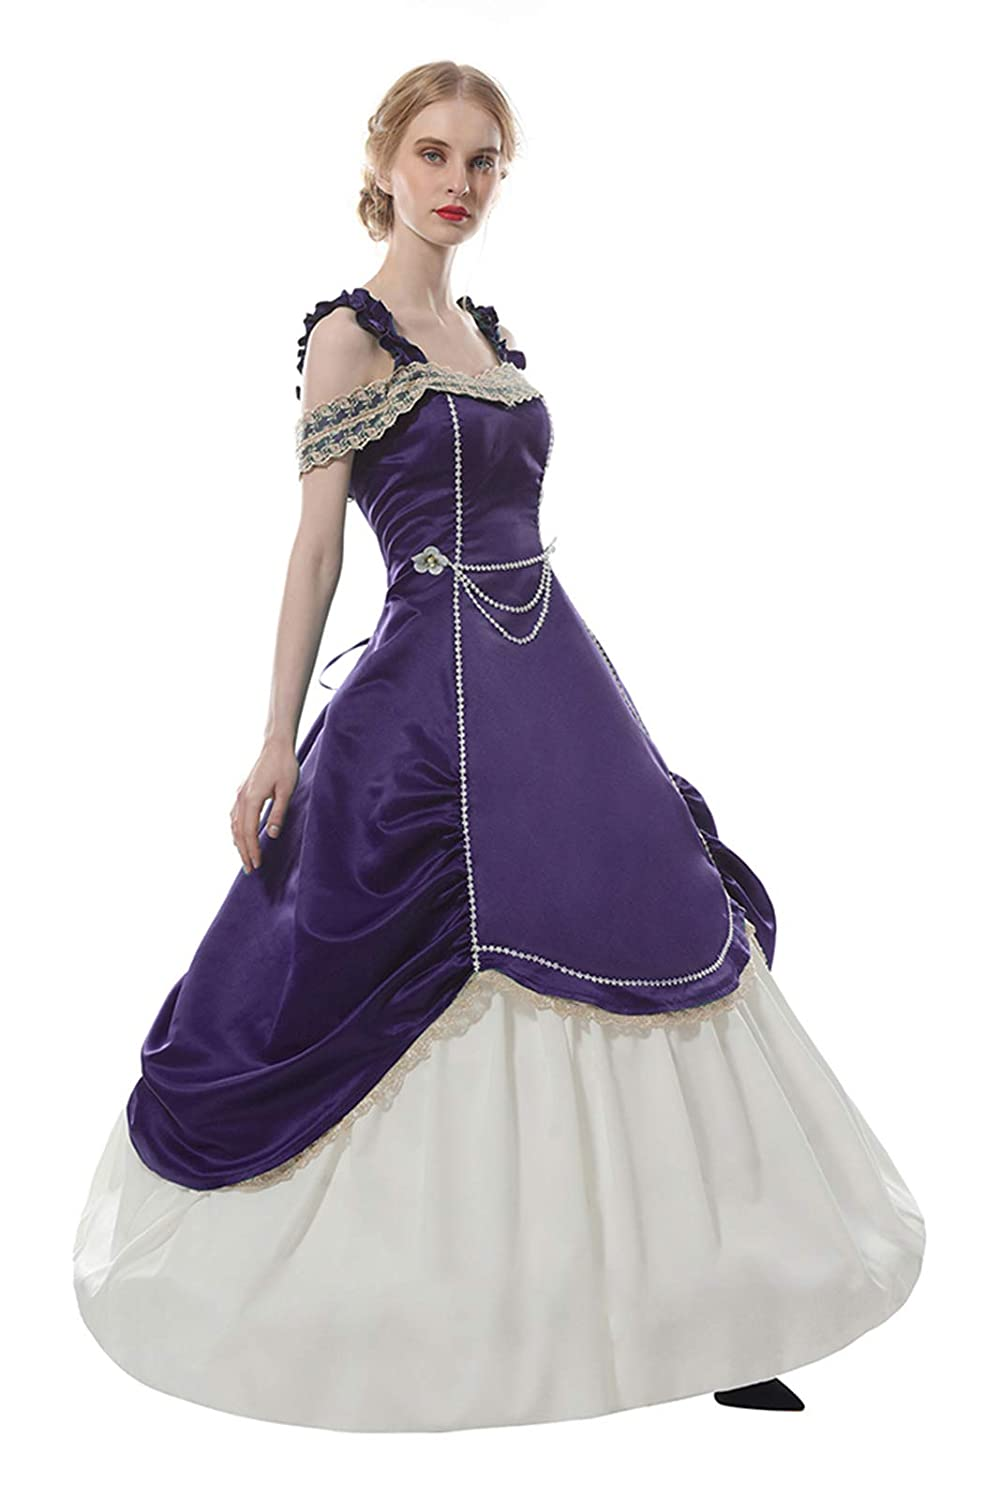 Victorian Dresses, Clothing: Patterns, Costumes, Custom Dresses Lemail Womens Renaissance Medieval Dress 1800s Victorian Era Masquerade Dresses $59.99 AT vintagedancer.com